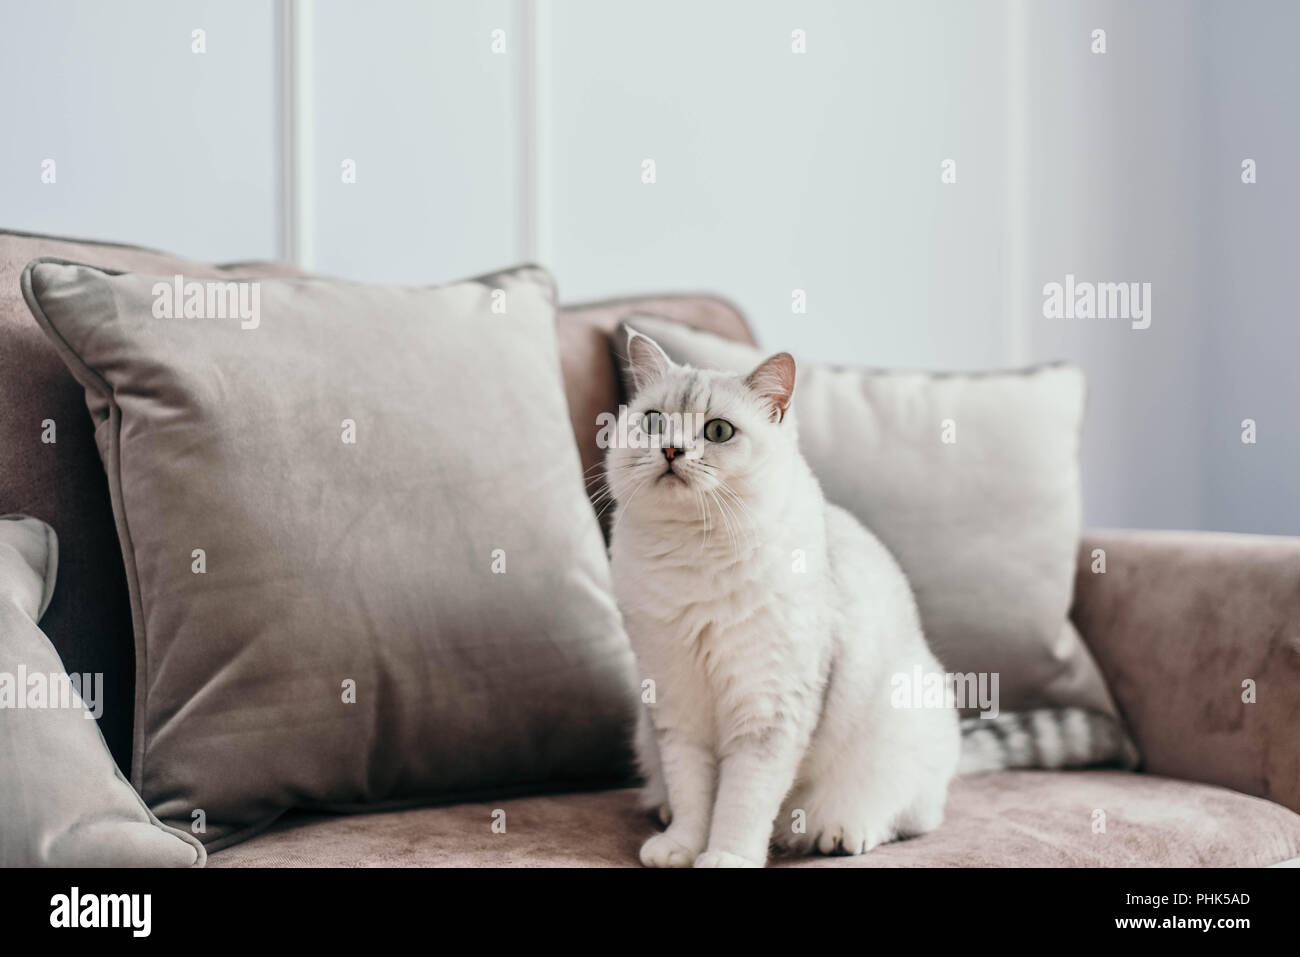 beautiful white grey cat on cauch in classic french home decor near rh alamy com French Parisian Decor Classic Room Decor